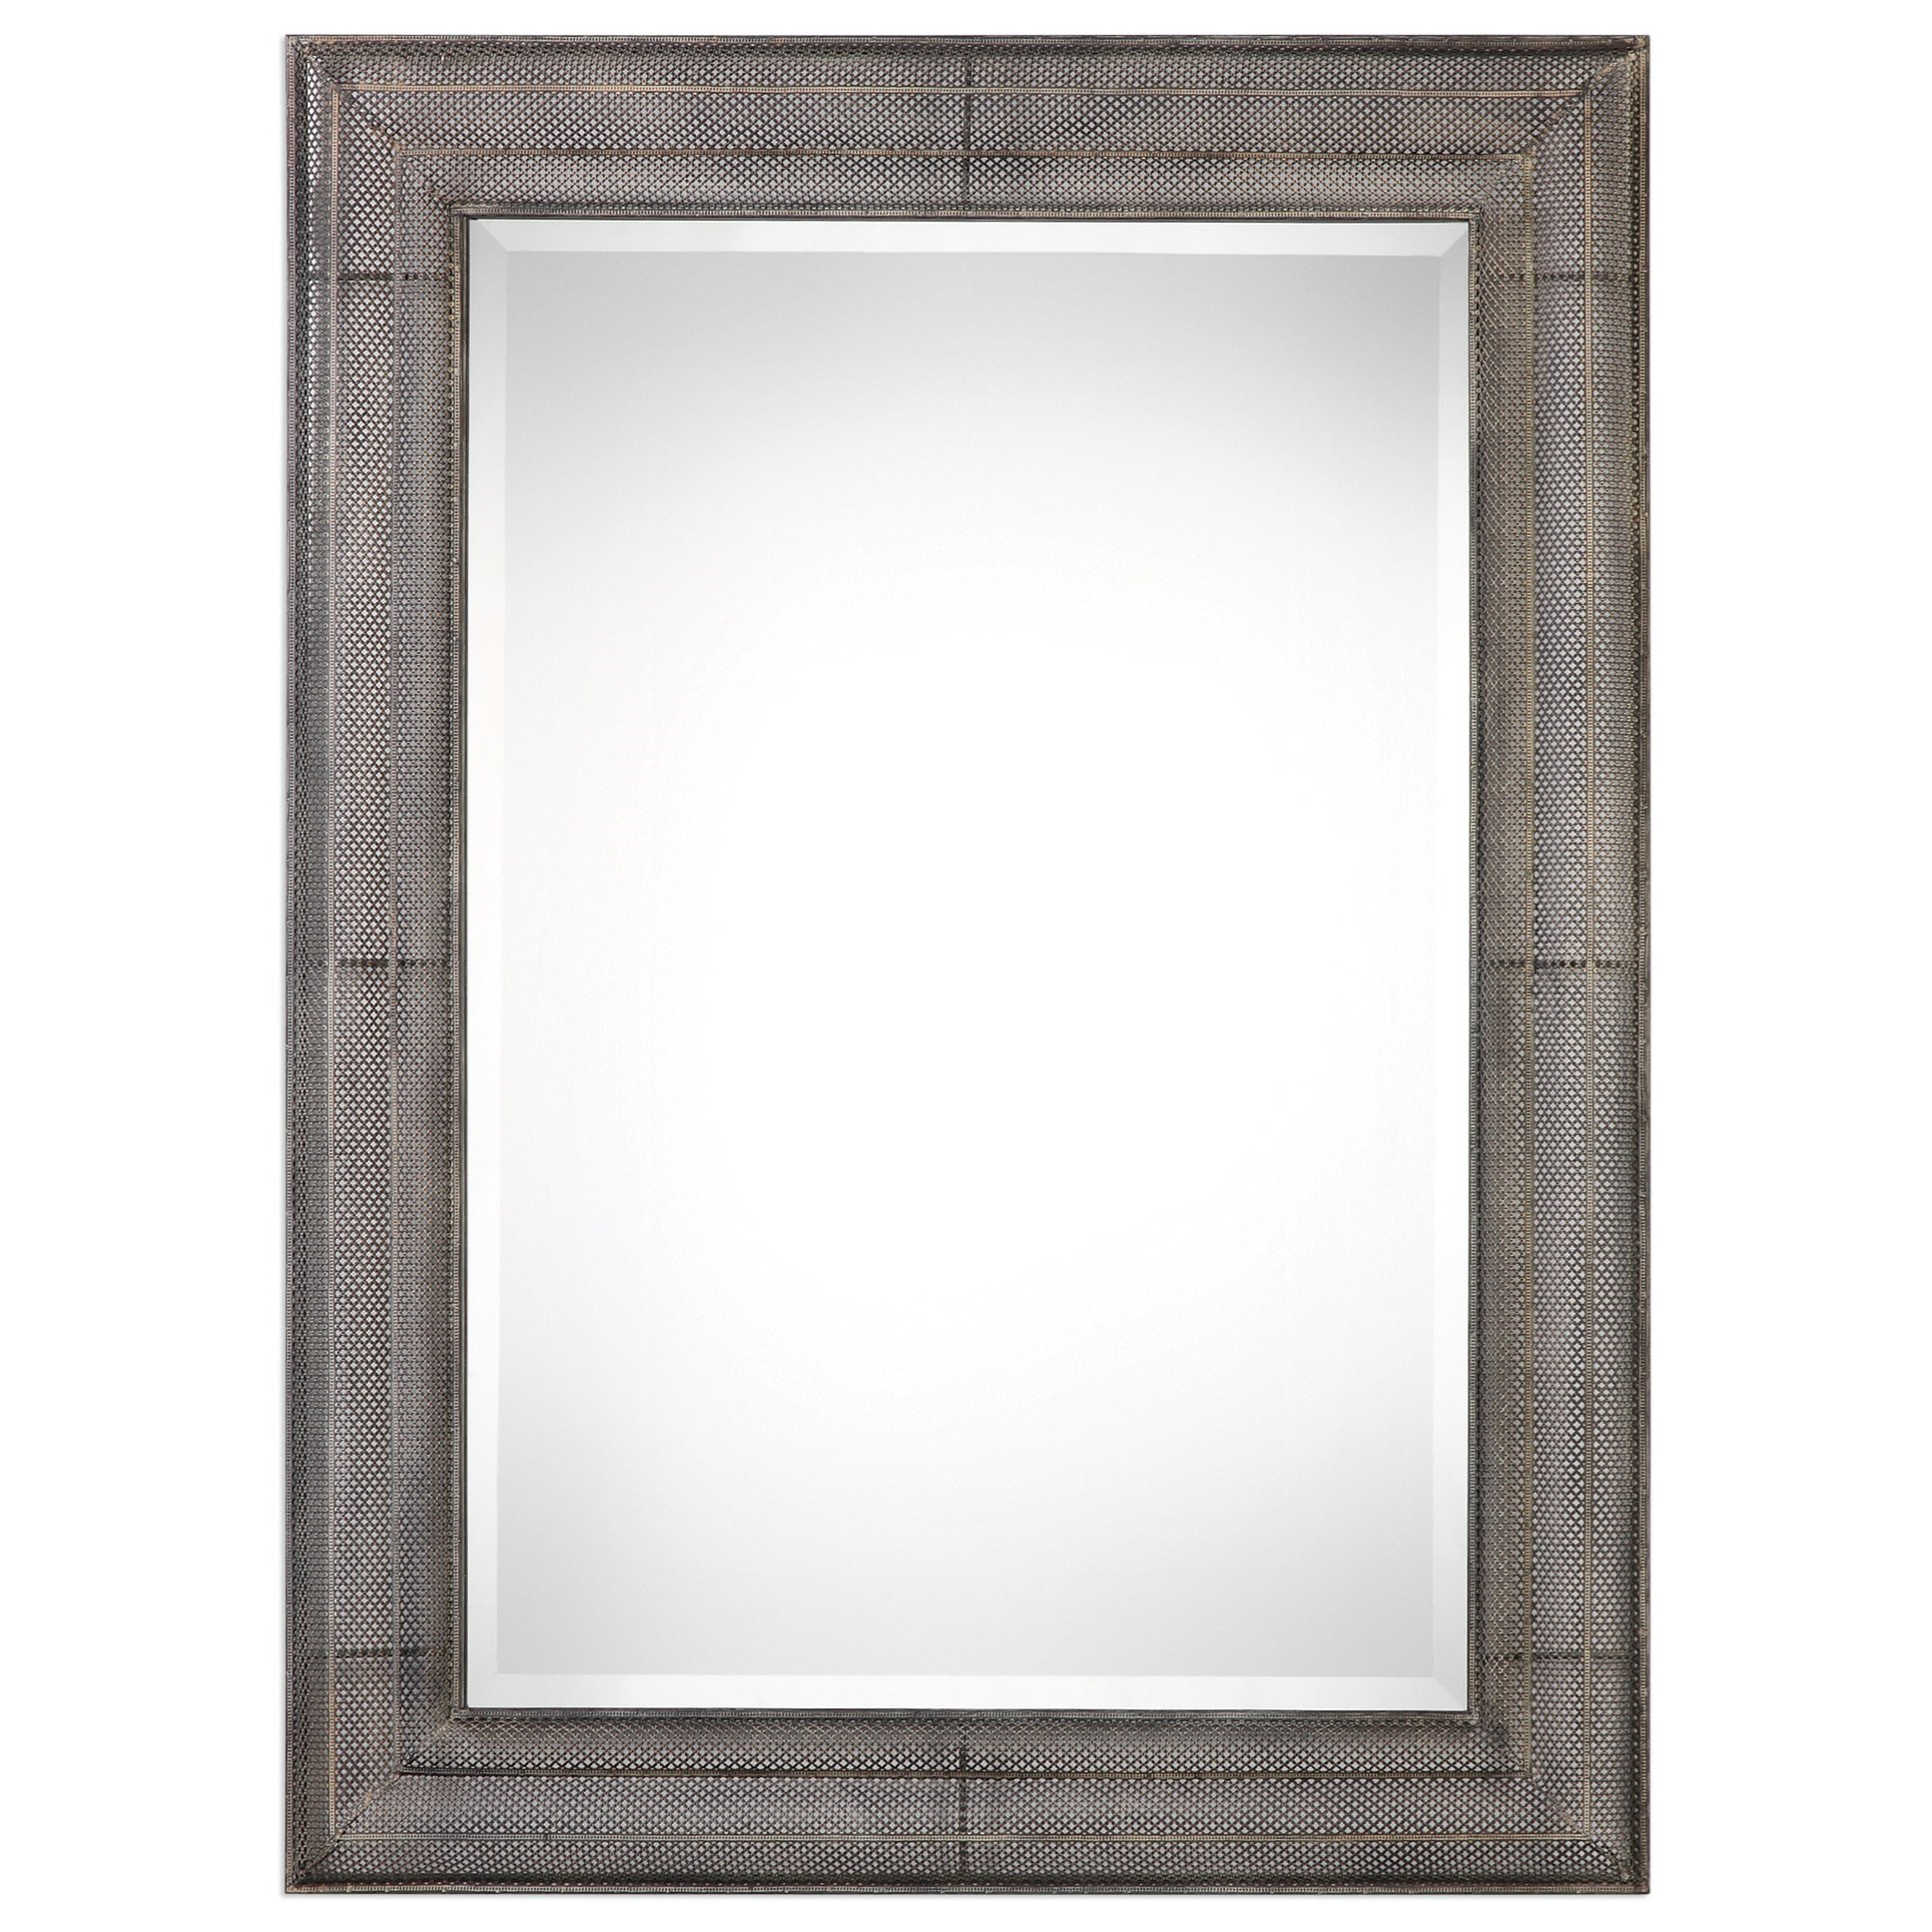 Uttermost Mirrors Corsica - Item Number: 09111